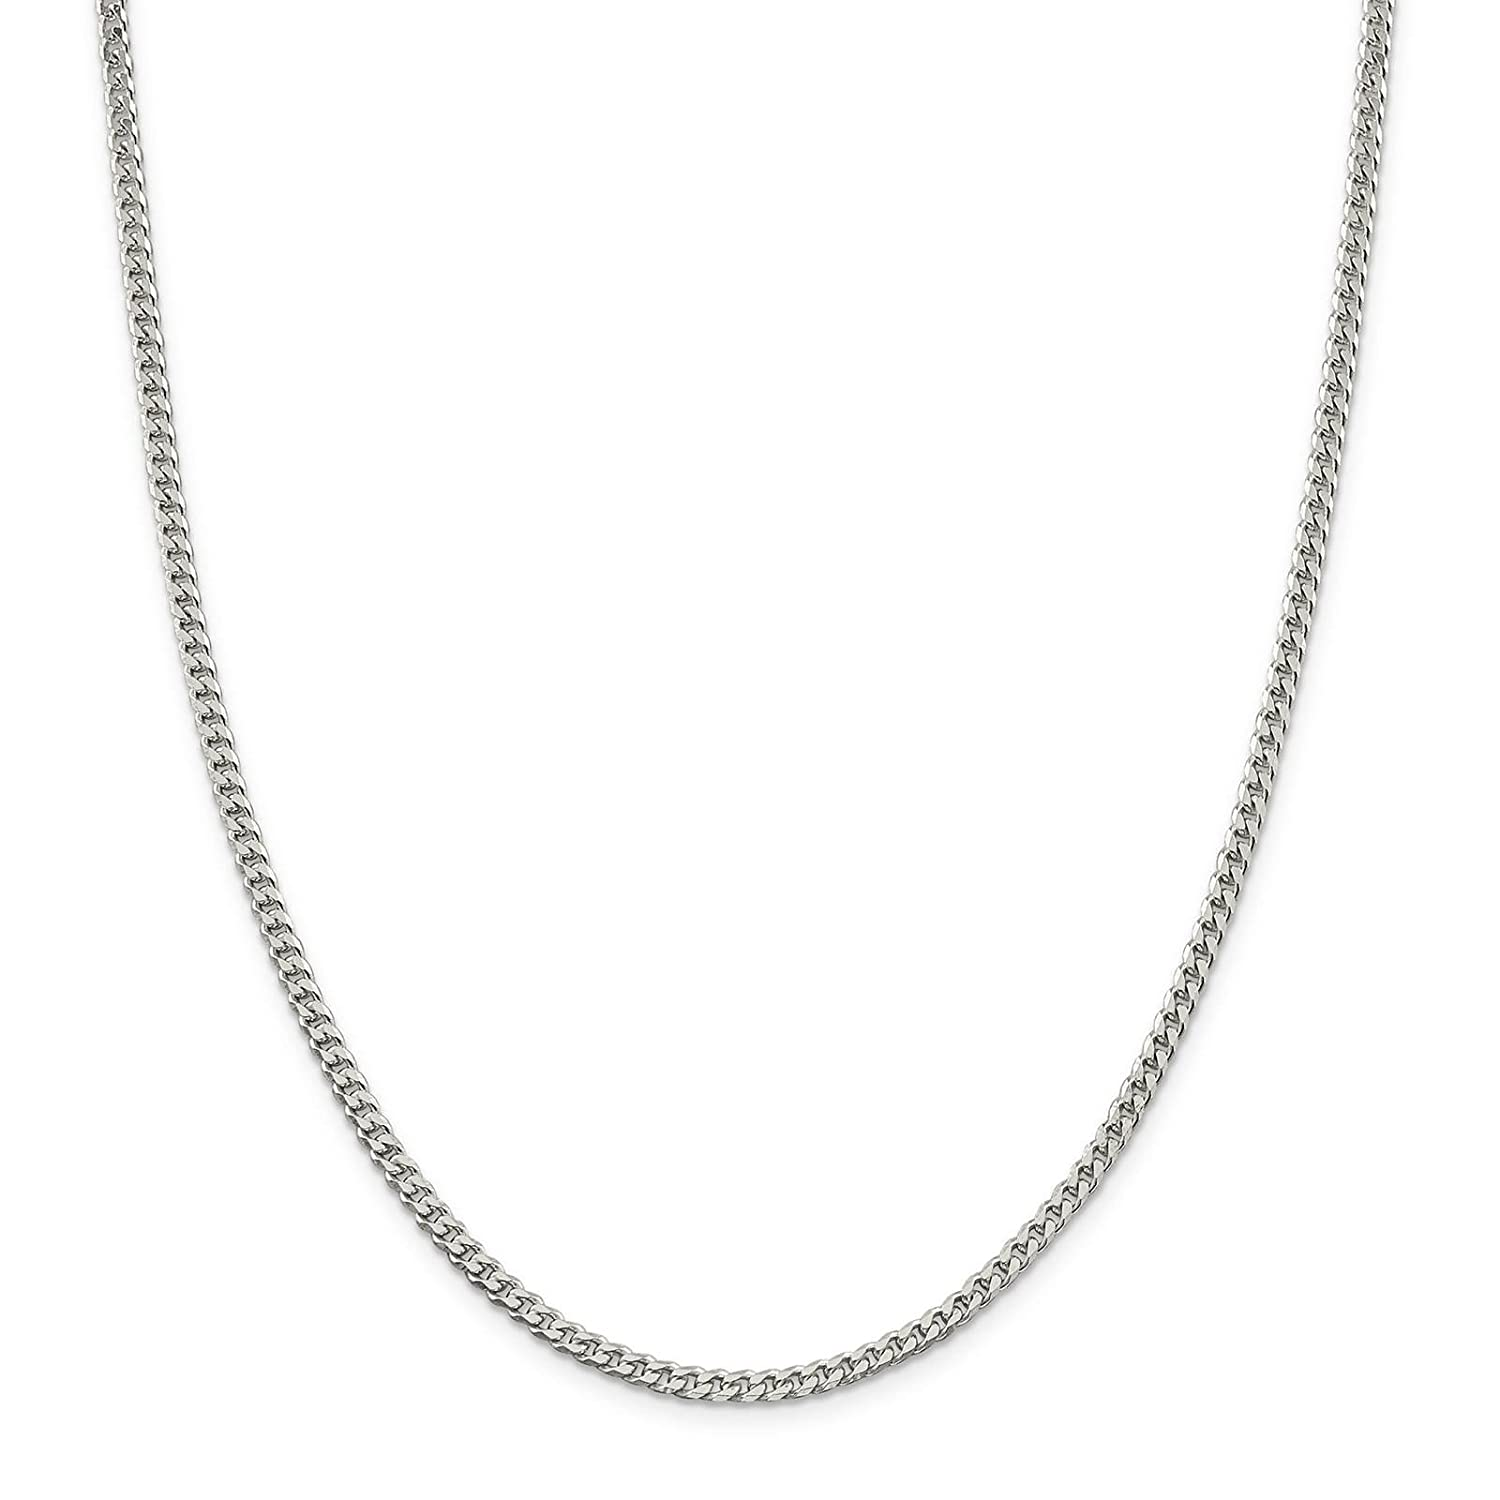 925 Sterling Silver Polished 3.1mm Curb Link Chain Necklace 7-24